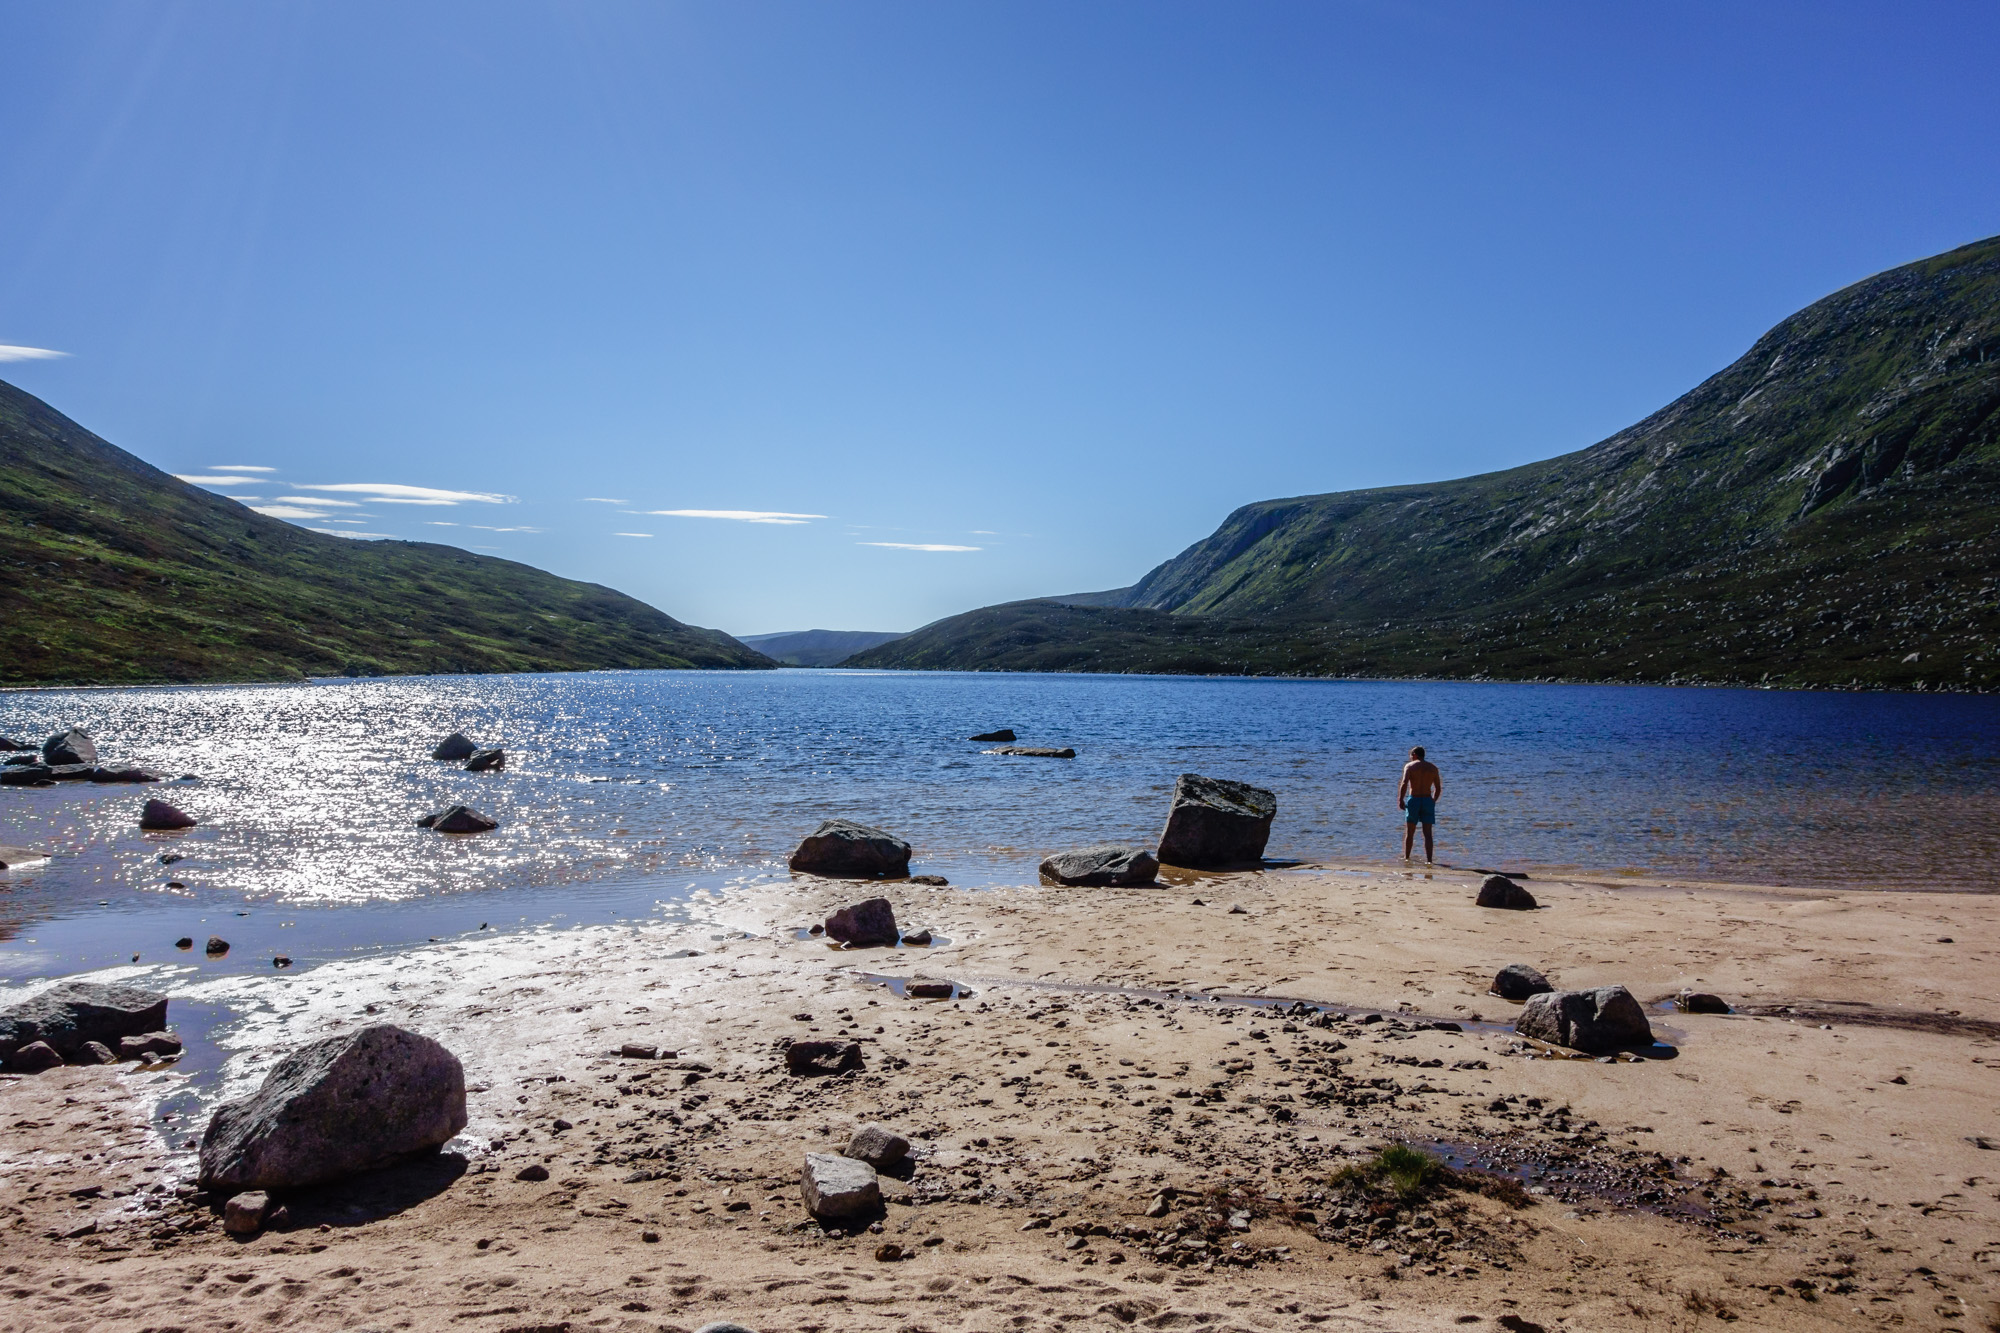 Mr Rankin enjoying a refreshing morning dip in the blue waters of the Dubh Loch